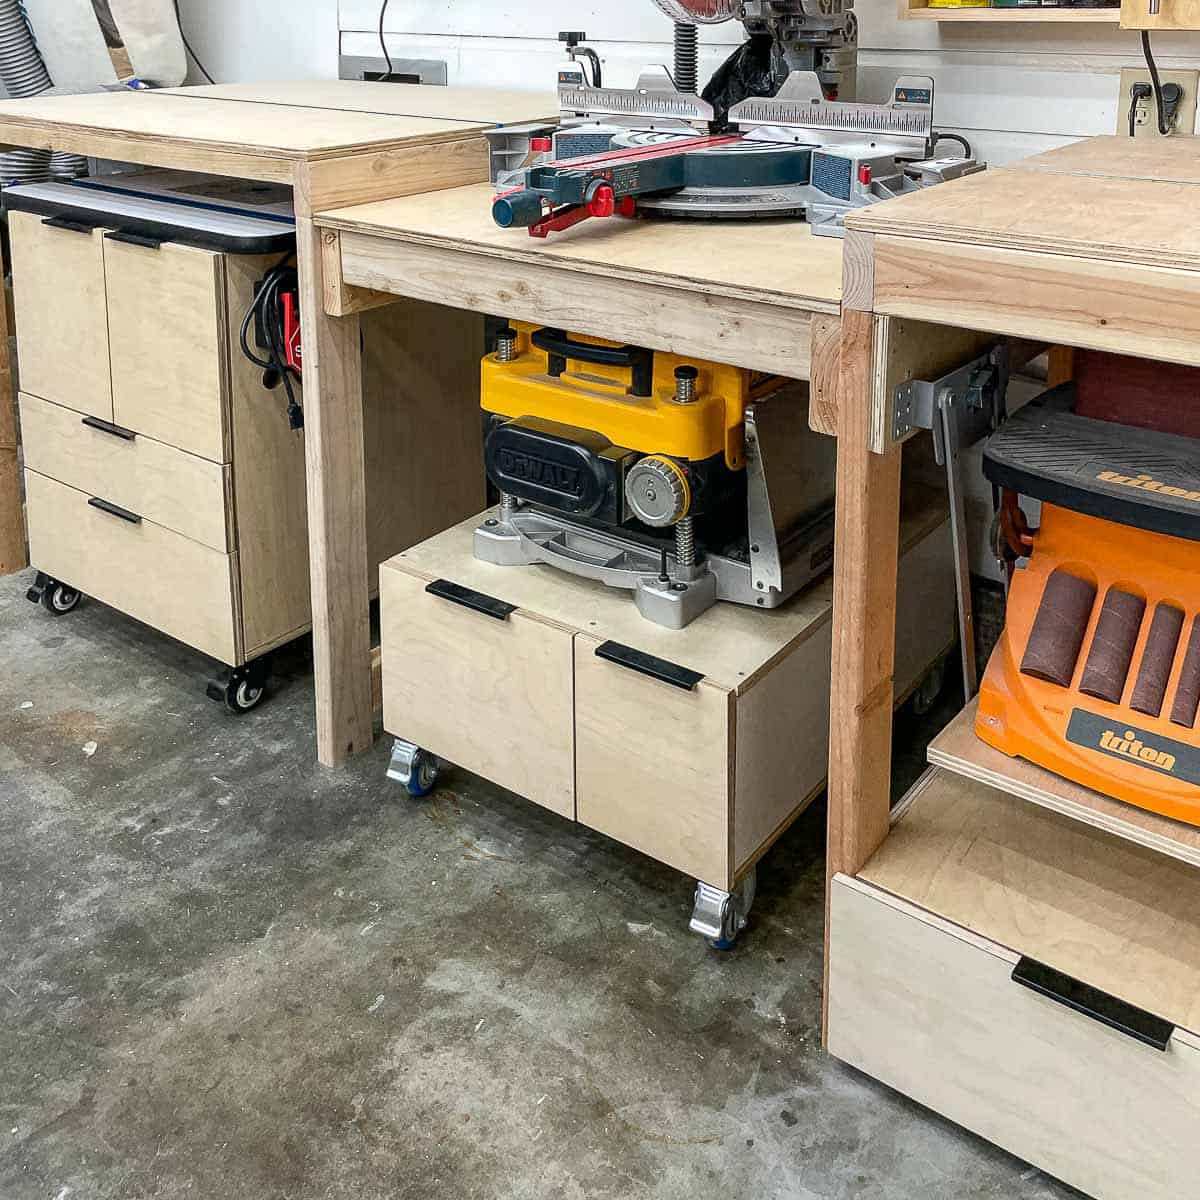 miter saw station with tool stands underneath